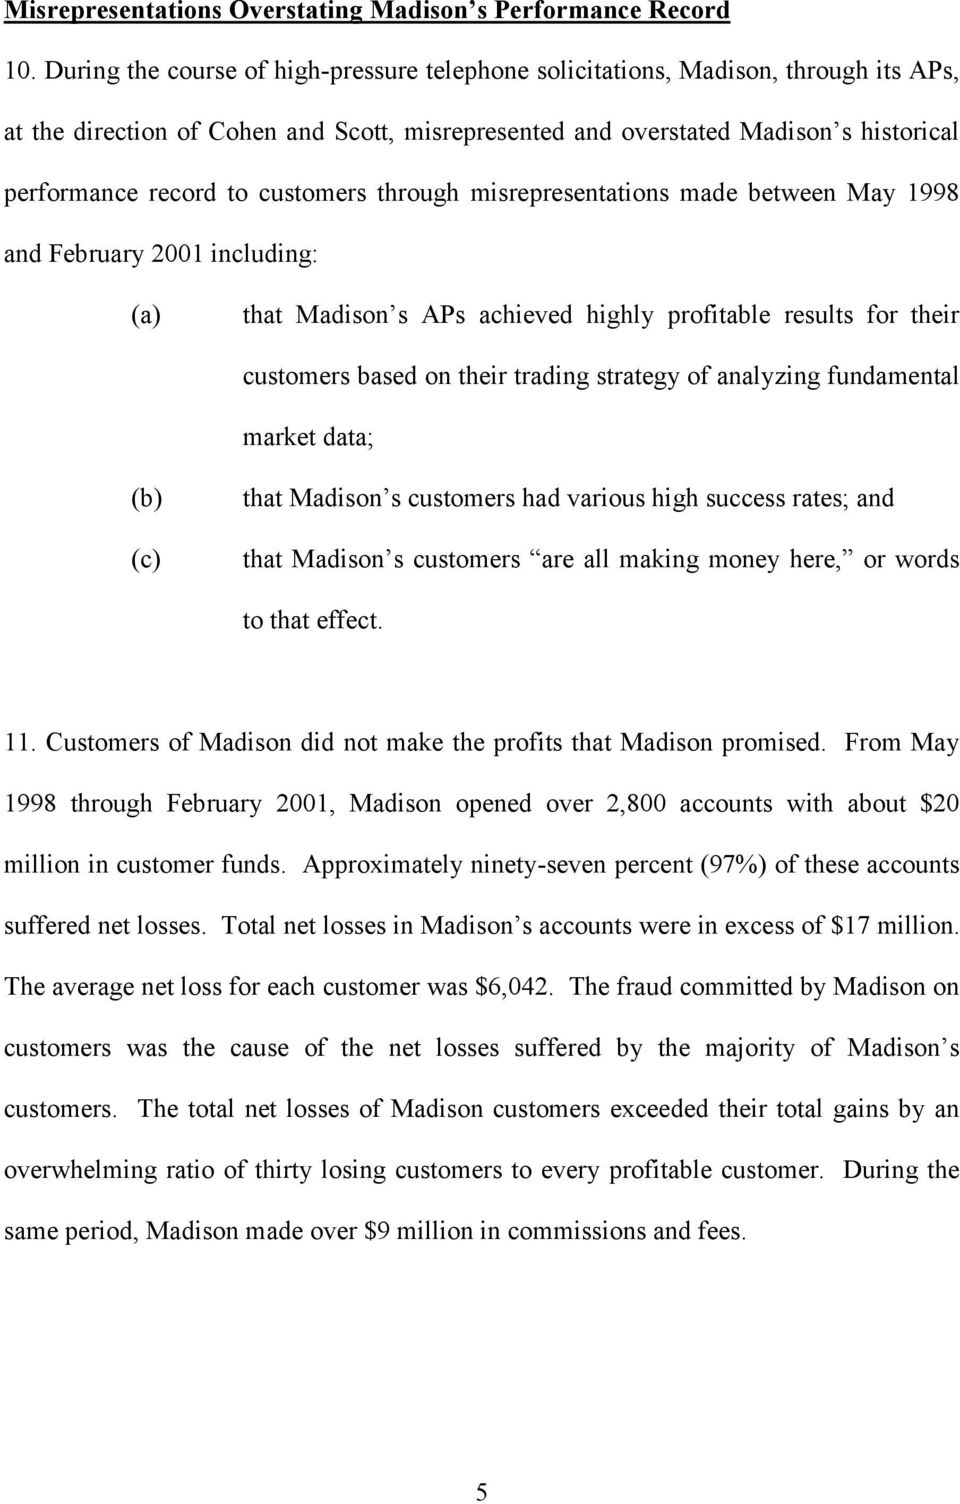 customers through misrepresentations made between May 1998 and February 2001 including: (a) that Madison s APs achieved highly profitable results for their customers based on their trading strategy